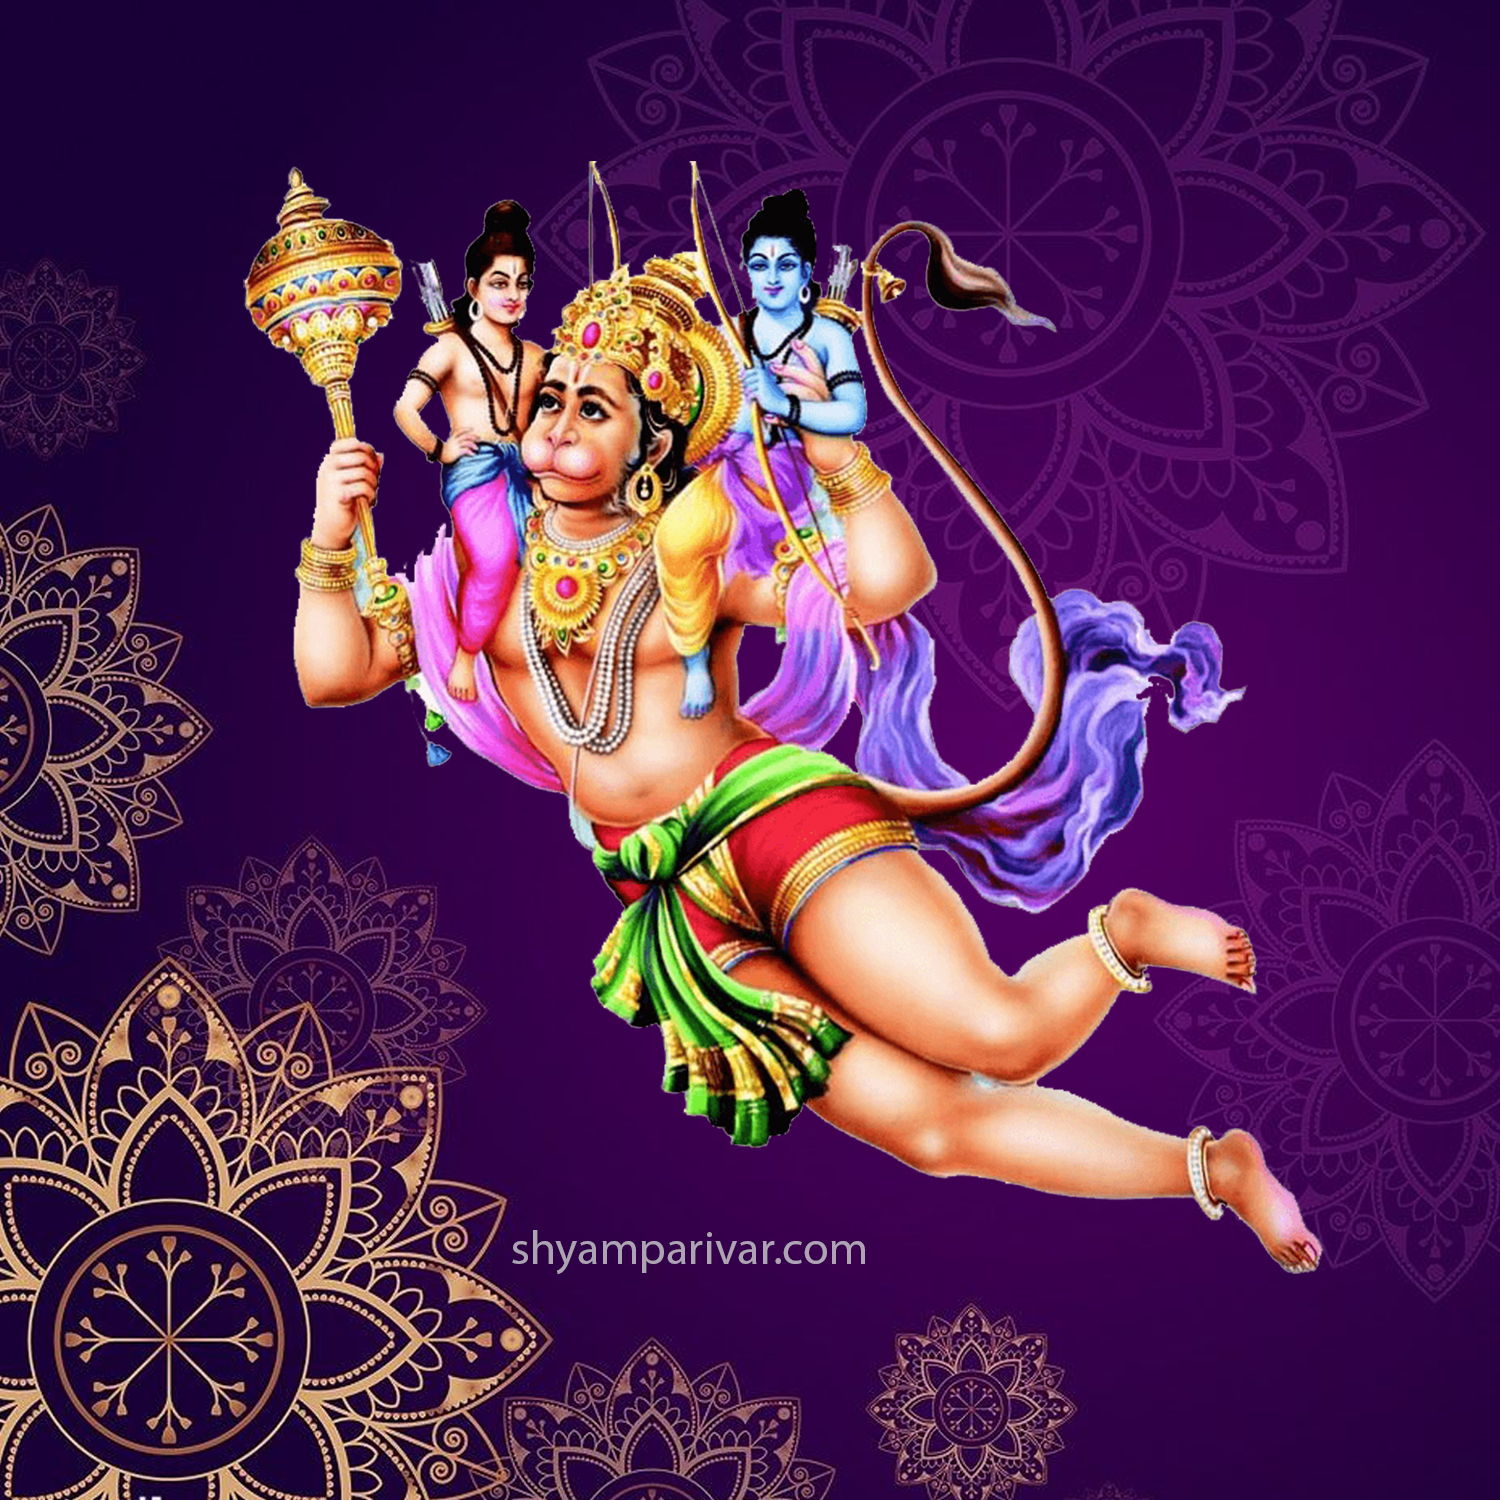 lord hanuman ji hd photos and wallpaper download